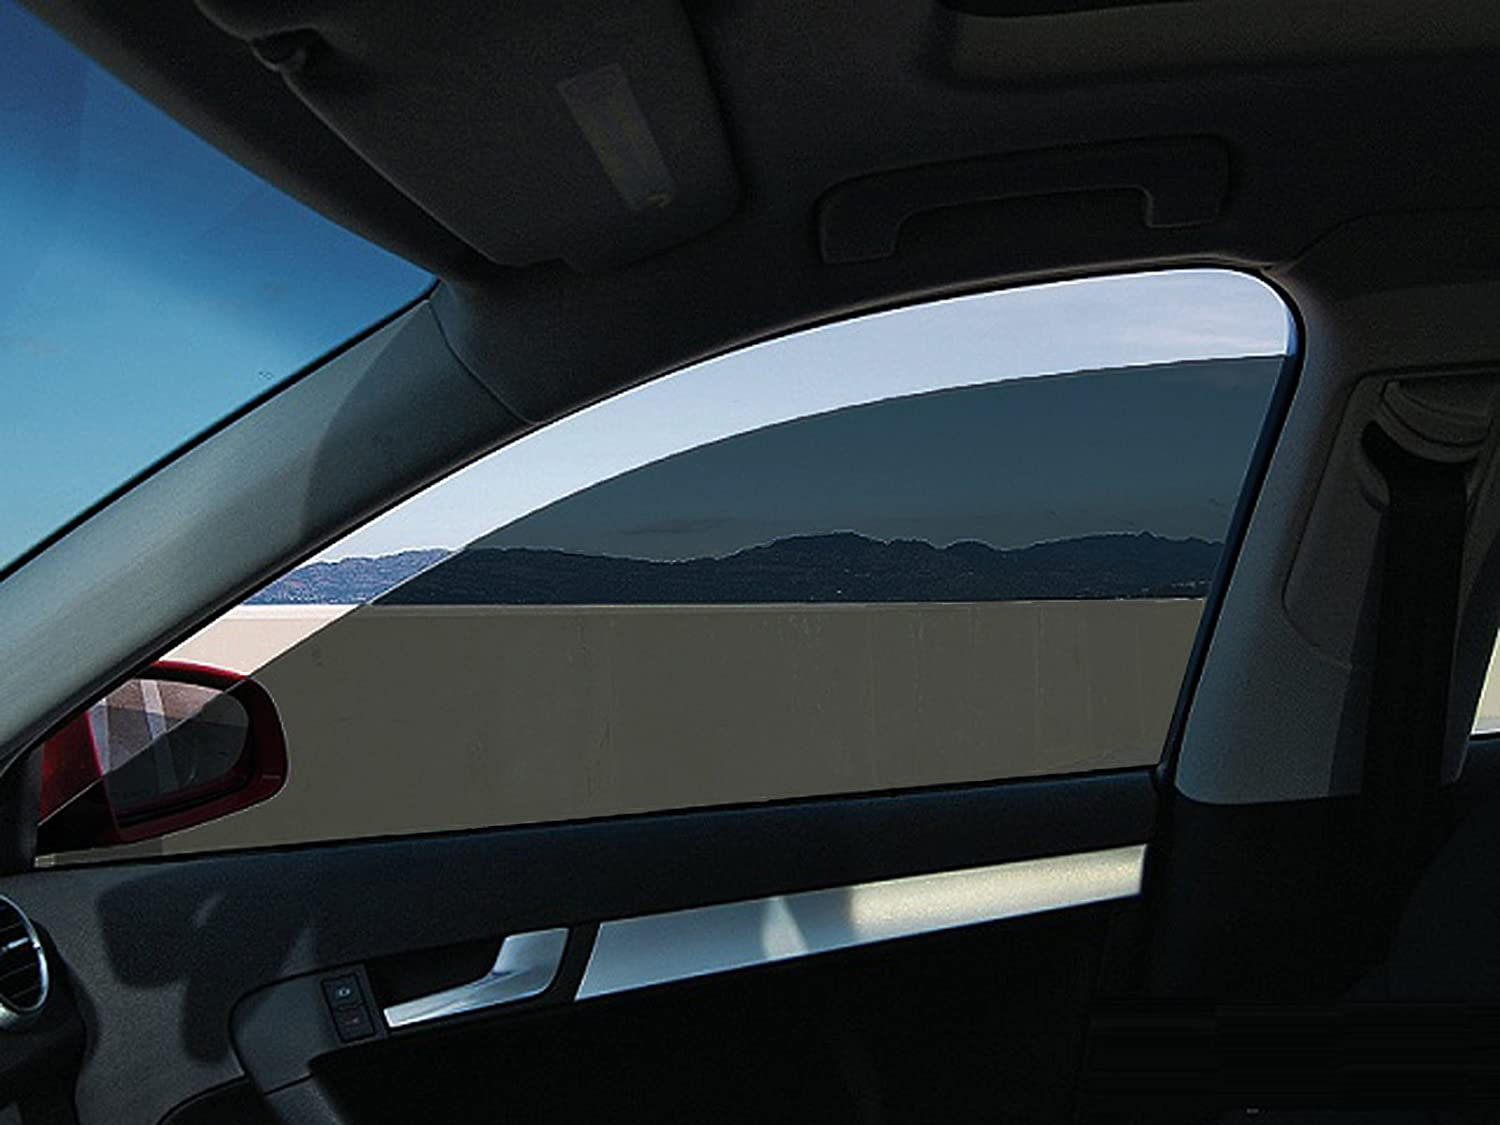 Wimax Limo 3/% VLT 36 in x 25 Ft Feet Uncut Roll Window Tint Film Auto Car Home Office